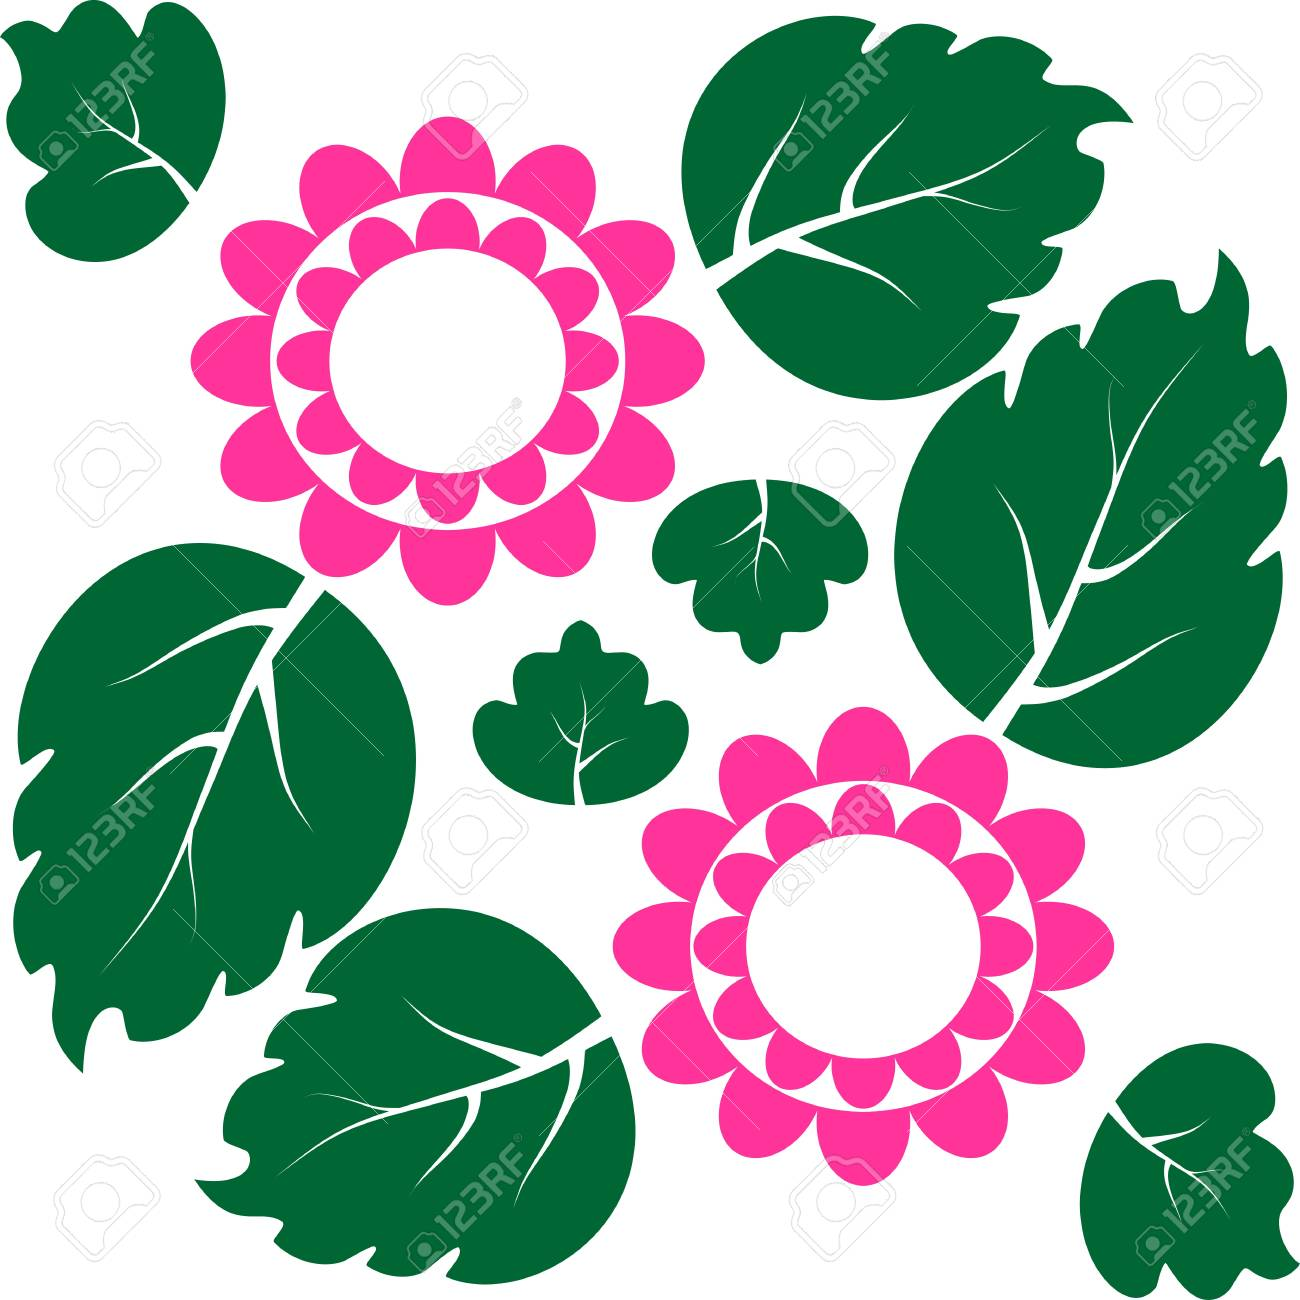 Pink Flowers With Green Leaves In The Background Royalty Free